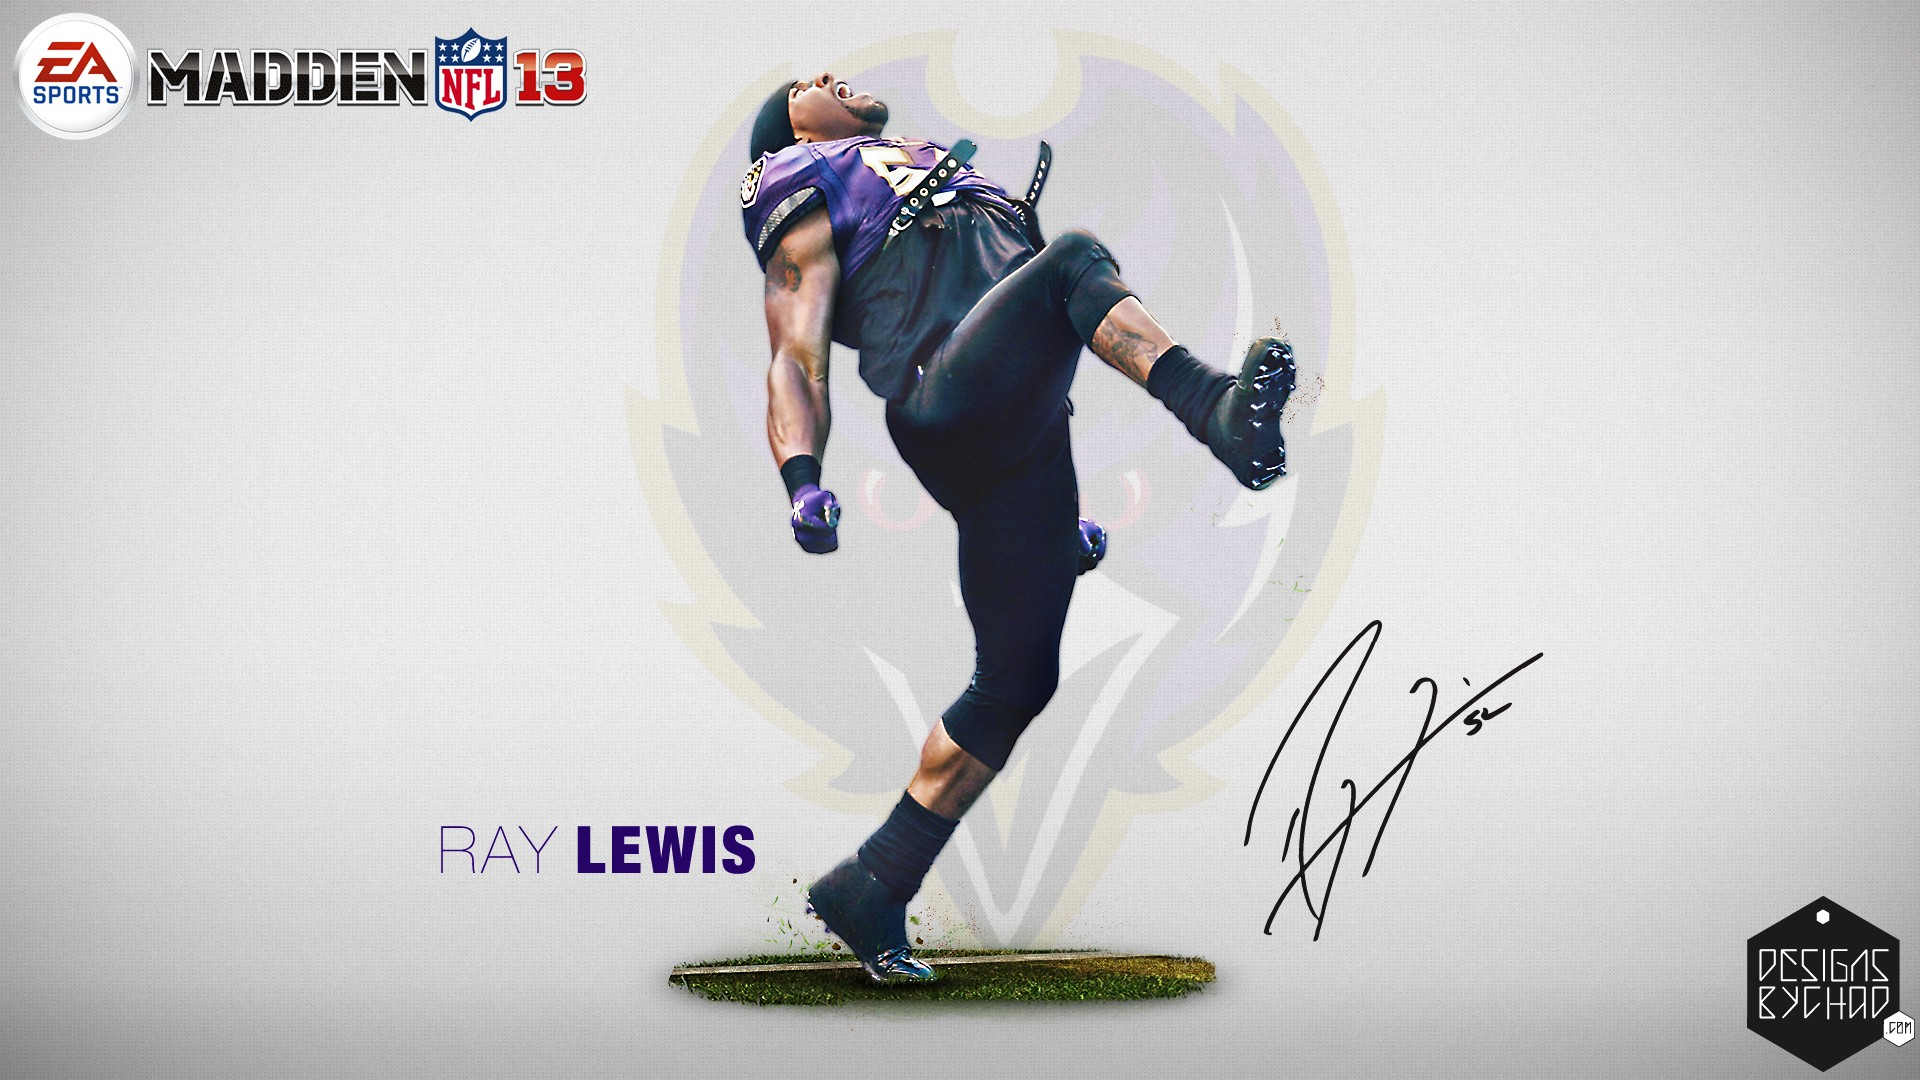 Ray Lewis Baltimore Ravens HD Wallpaper HD Wallpapers Source 1920x1080